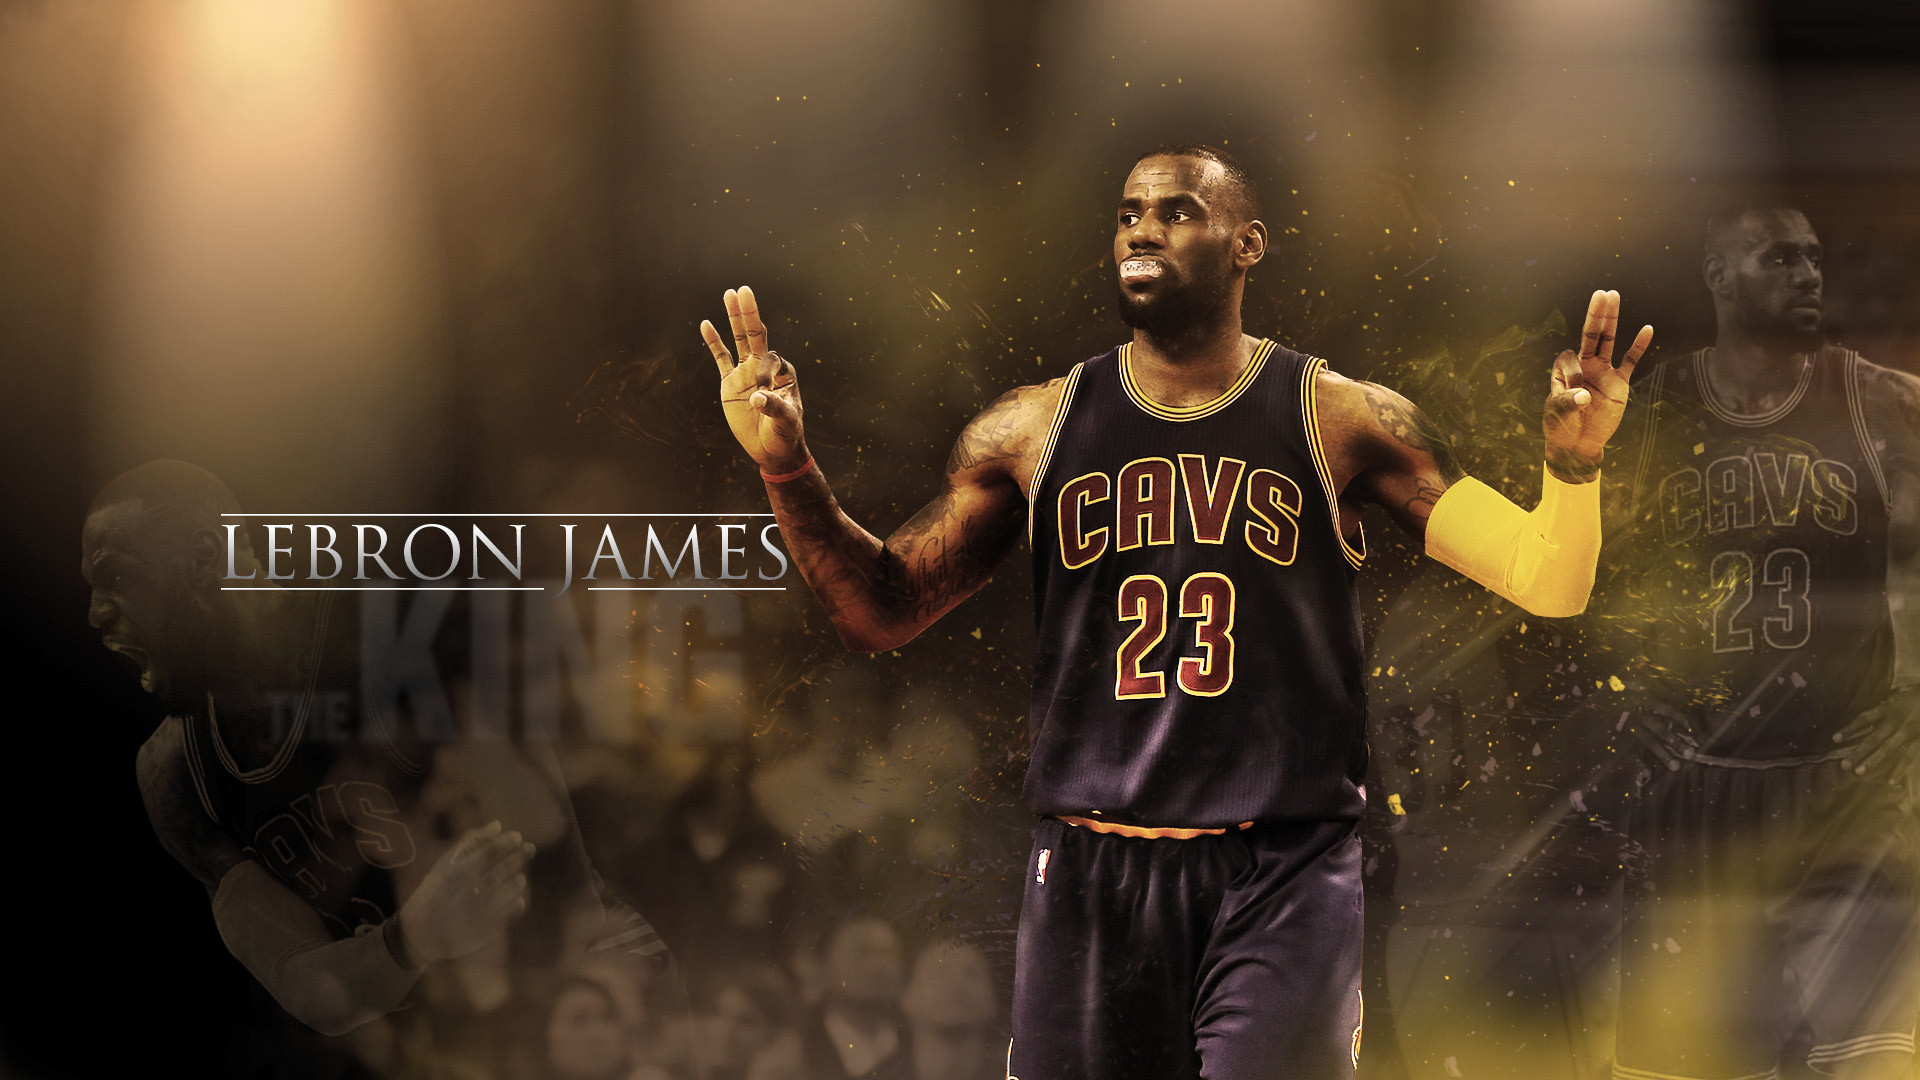 1920x1080 LeBron James HD Wallpaper | Background Image |  | ID:782686 -  Wallpaper Abyss